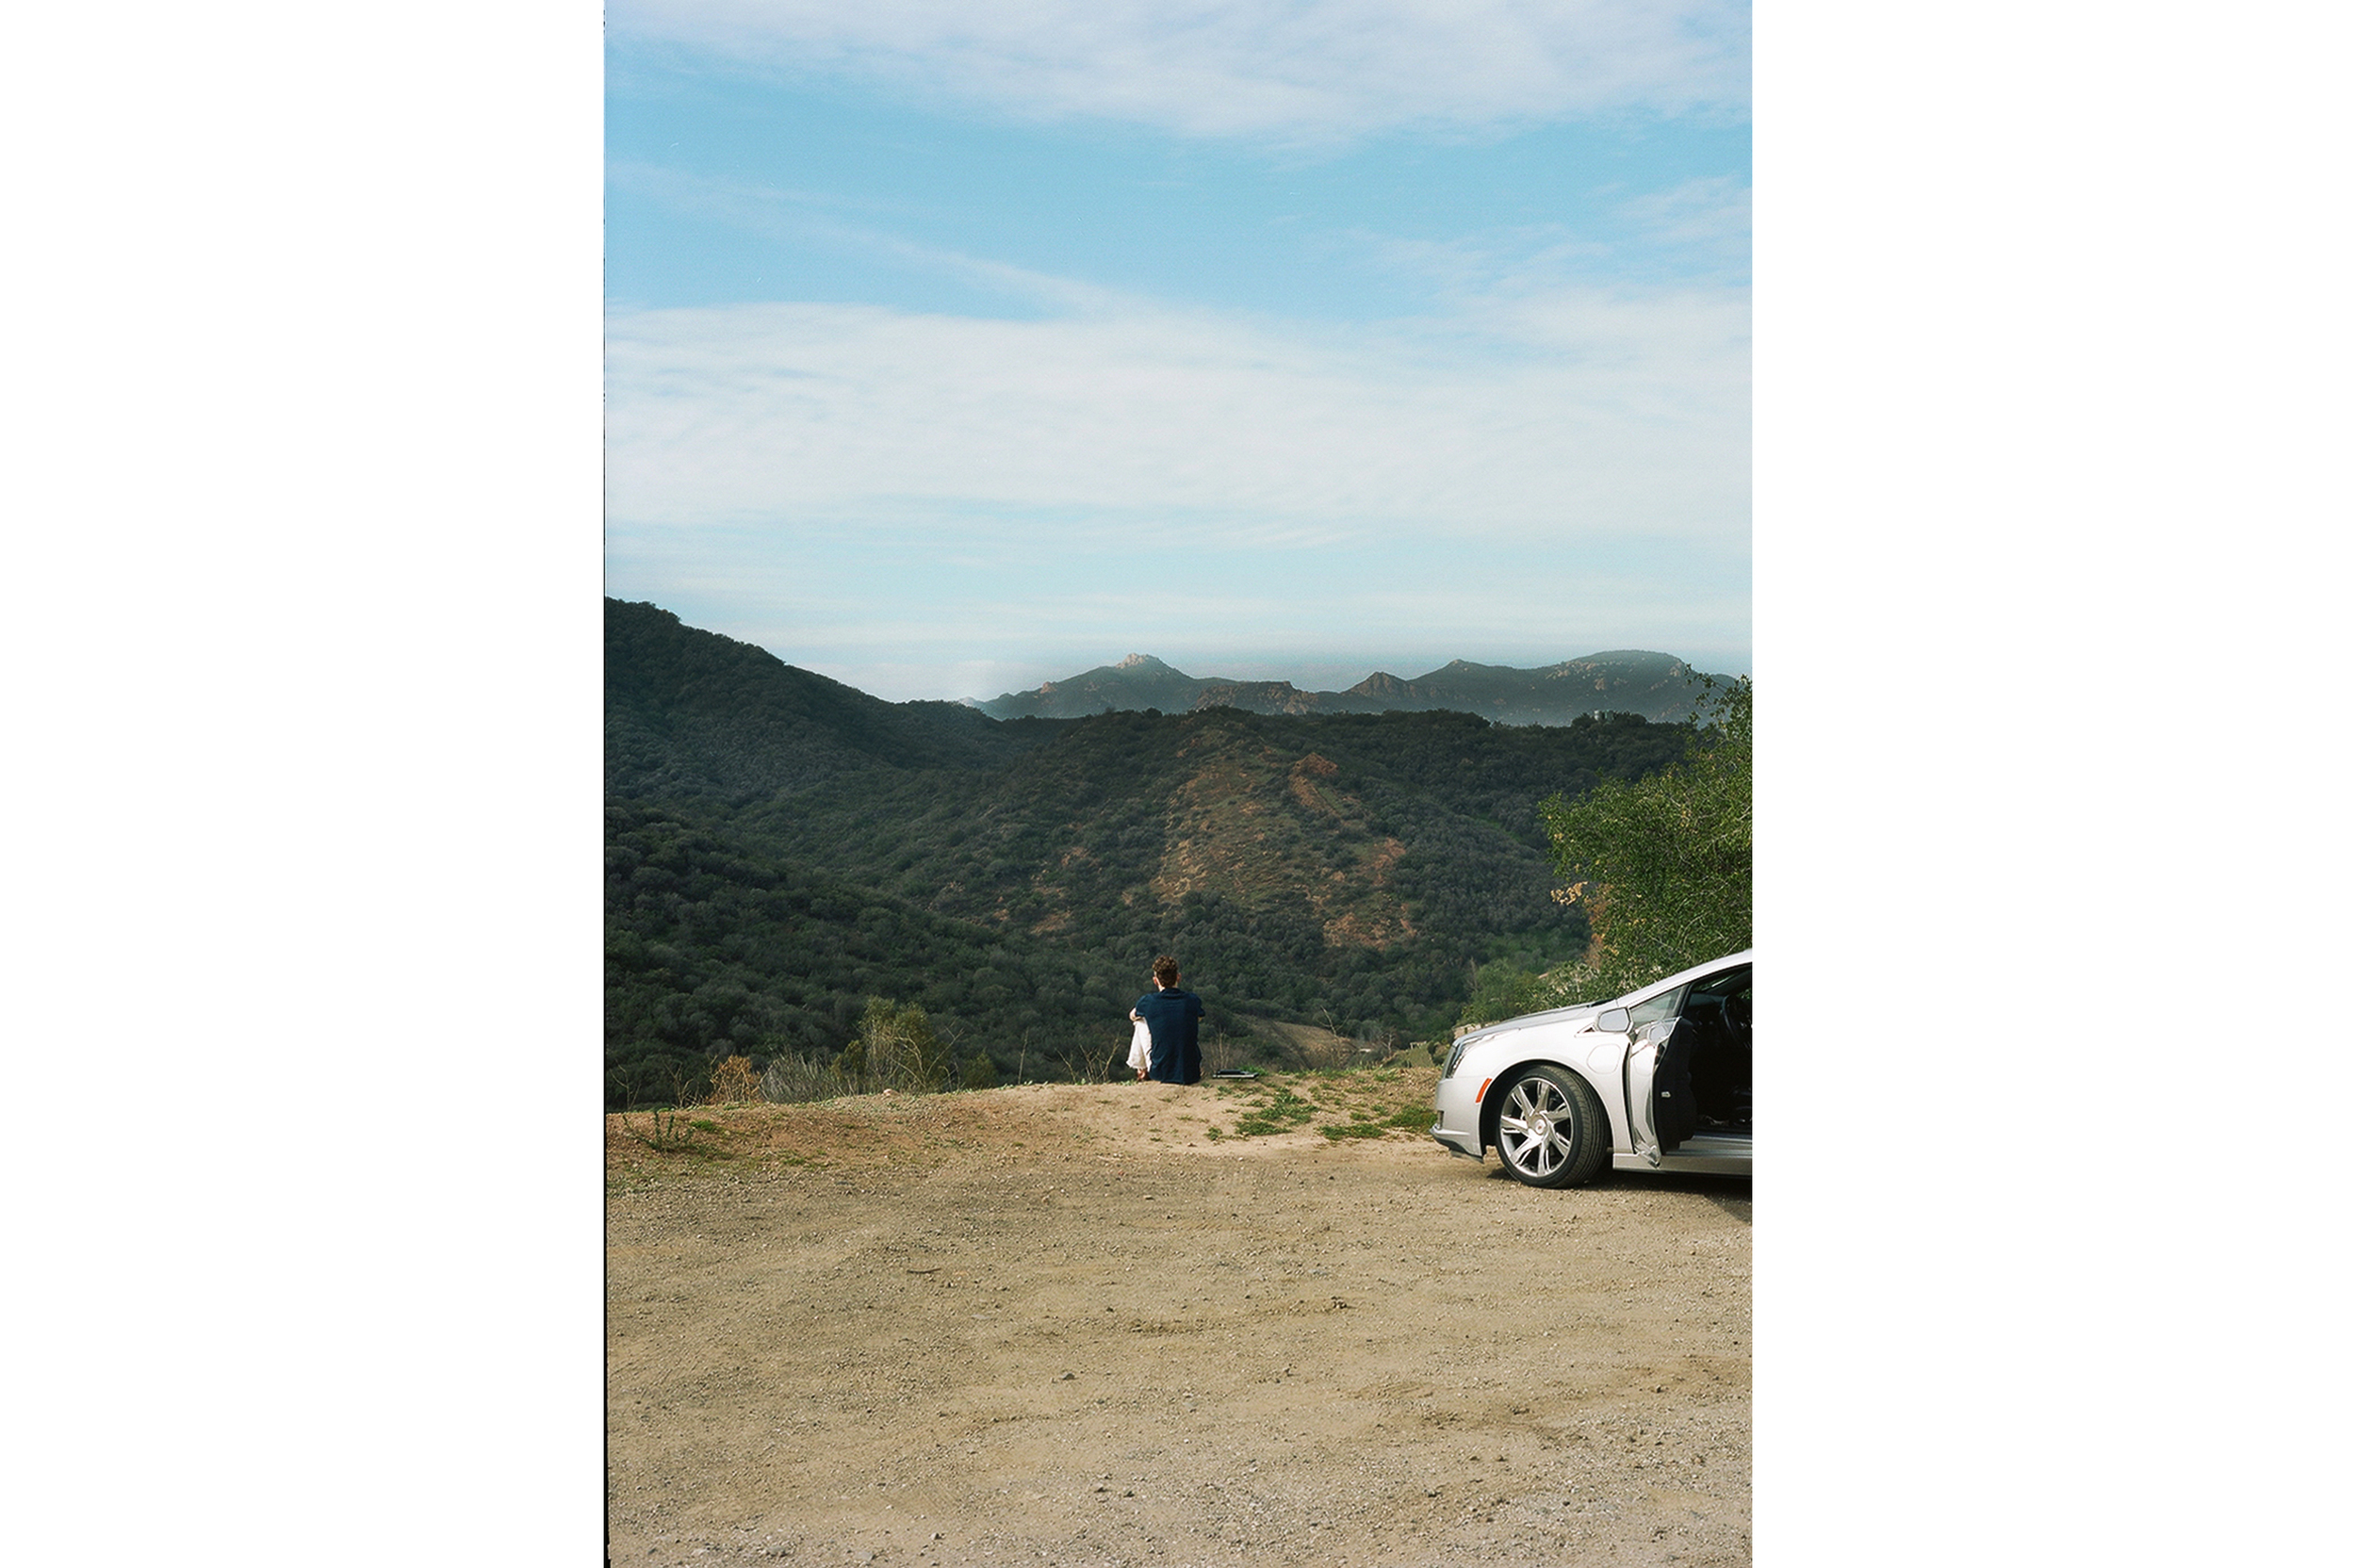 Scott, photographed for Cadillac, Big Sur, 2015